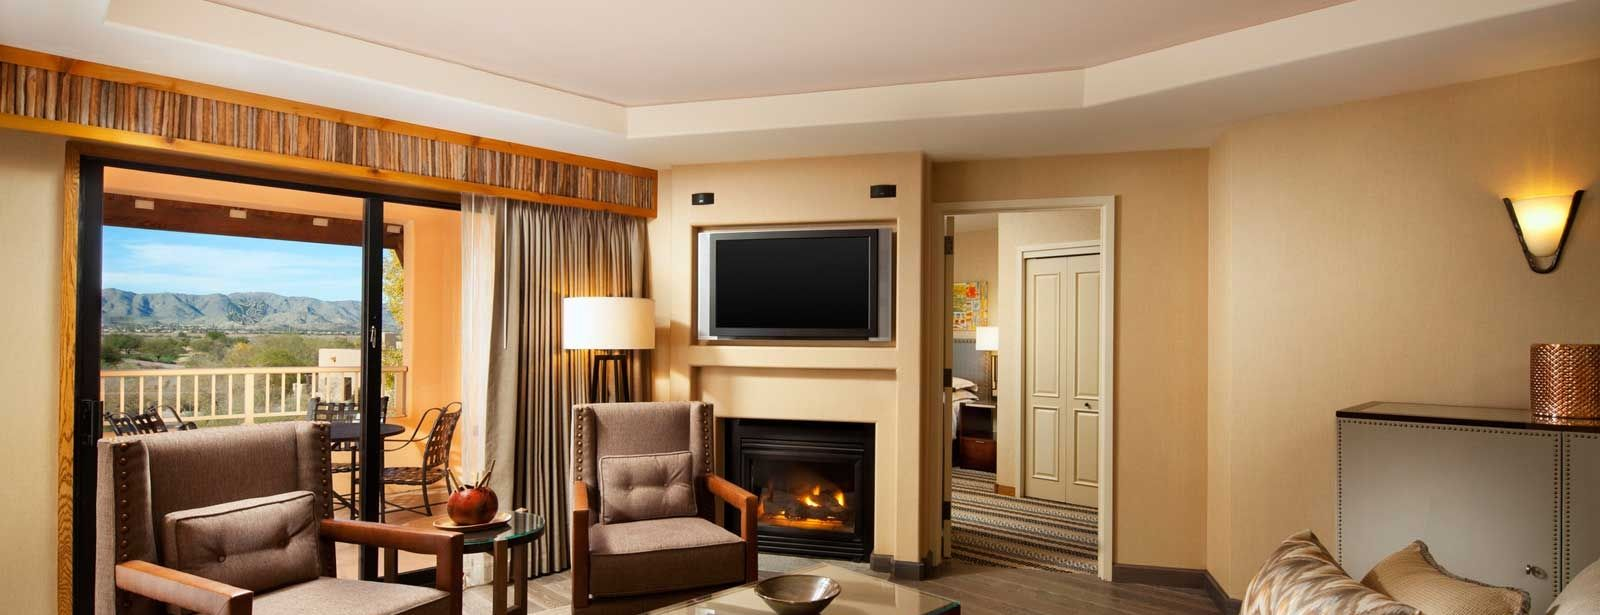 Sheraton Wild Horse Pass Resort & Spa - Governor Suite